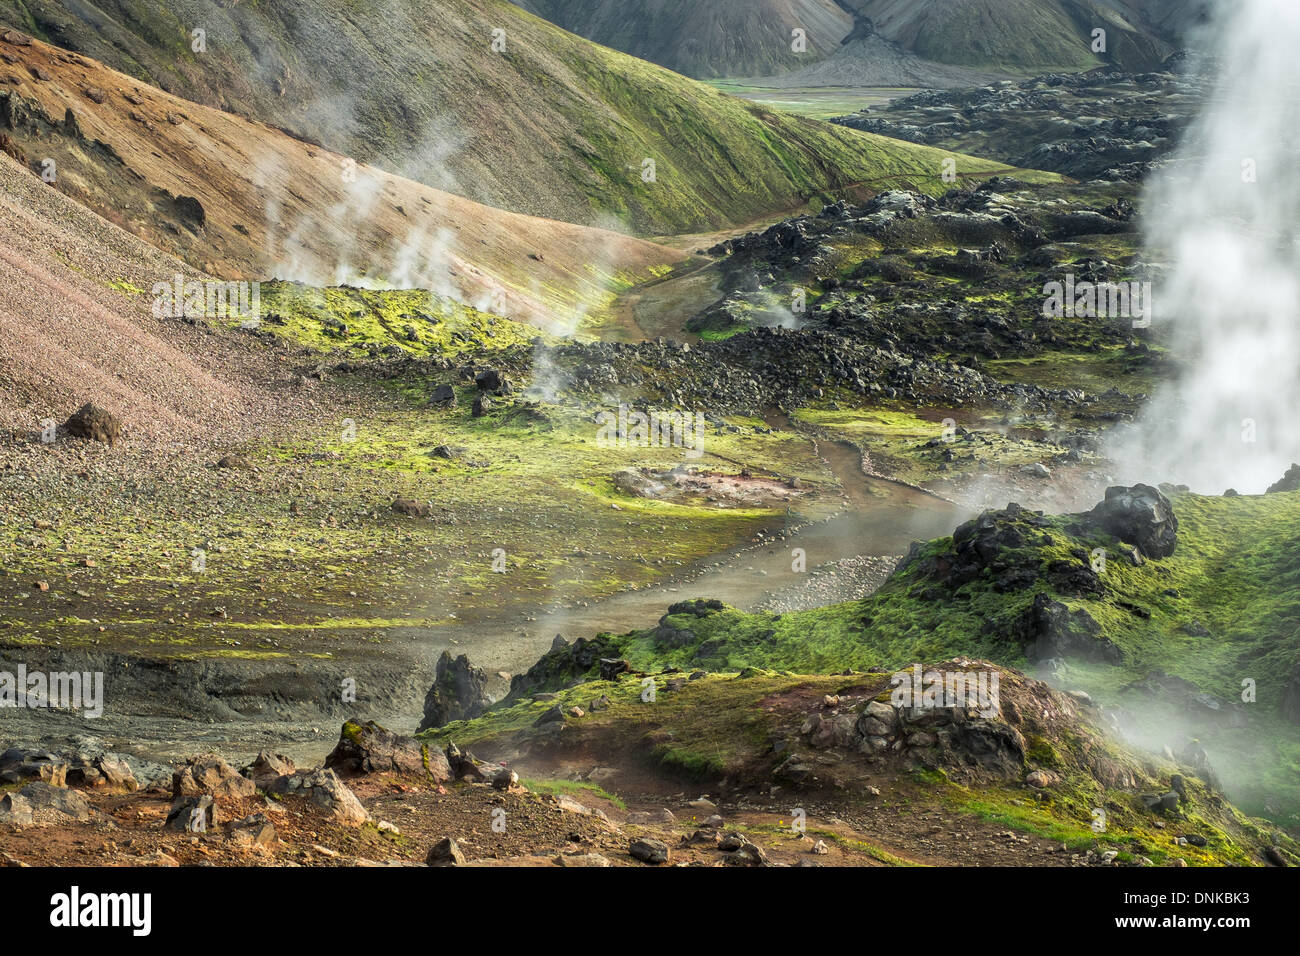 An active geothermal area with multiple steam vents, Landmannalaugar, Iceland - Stock Image